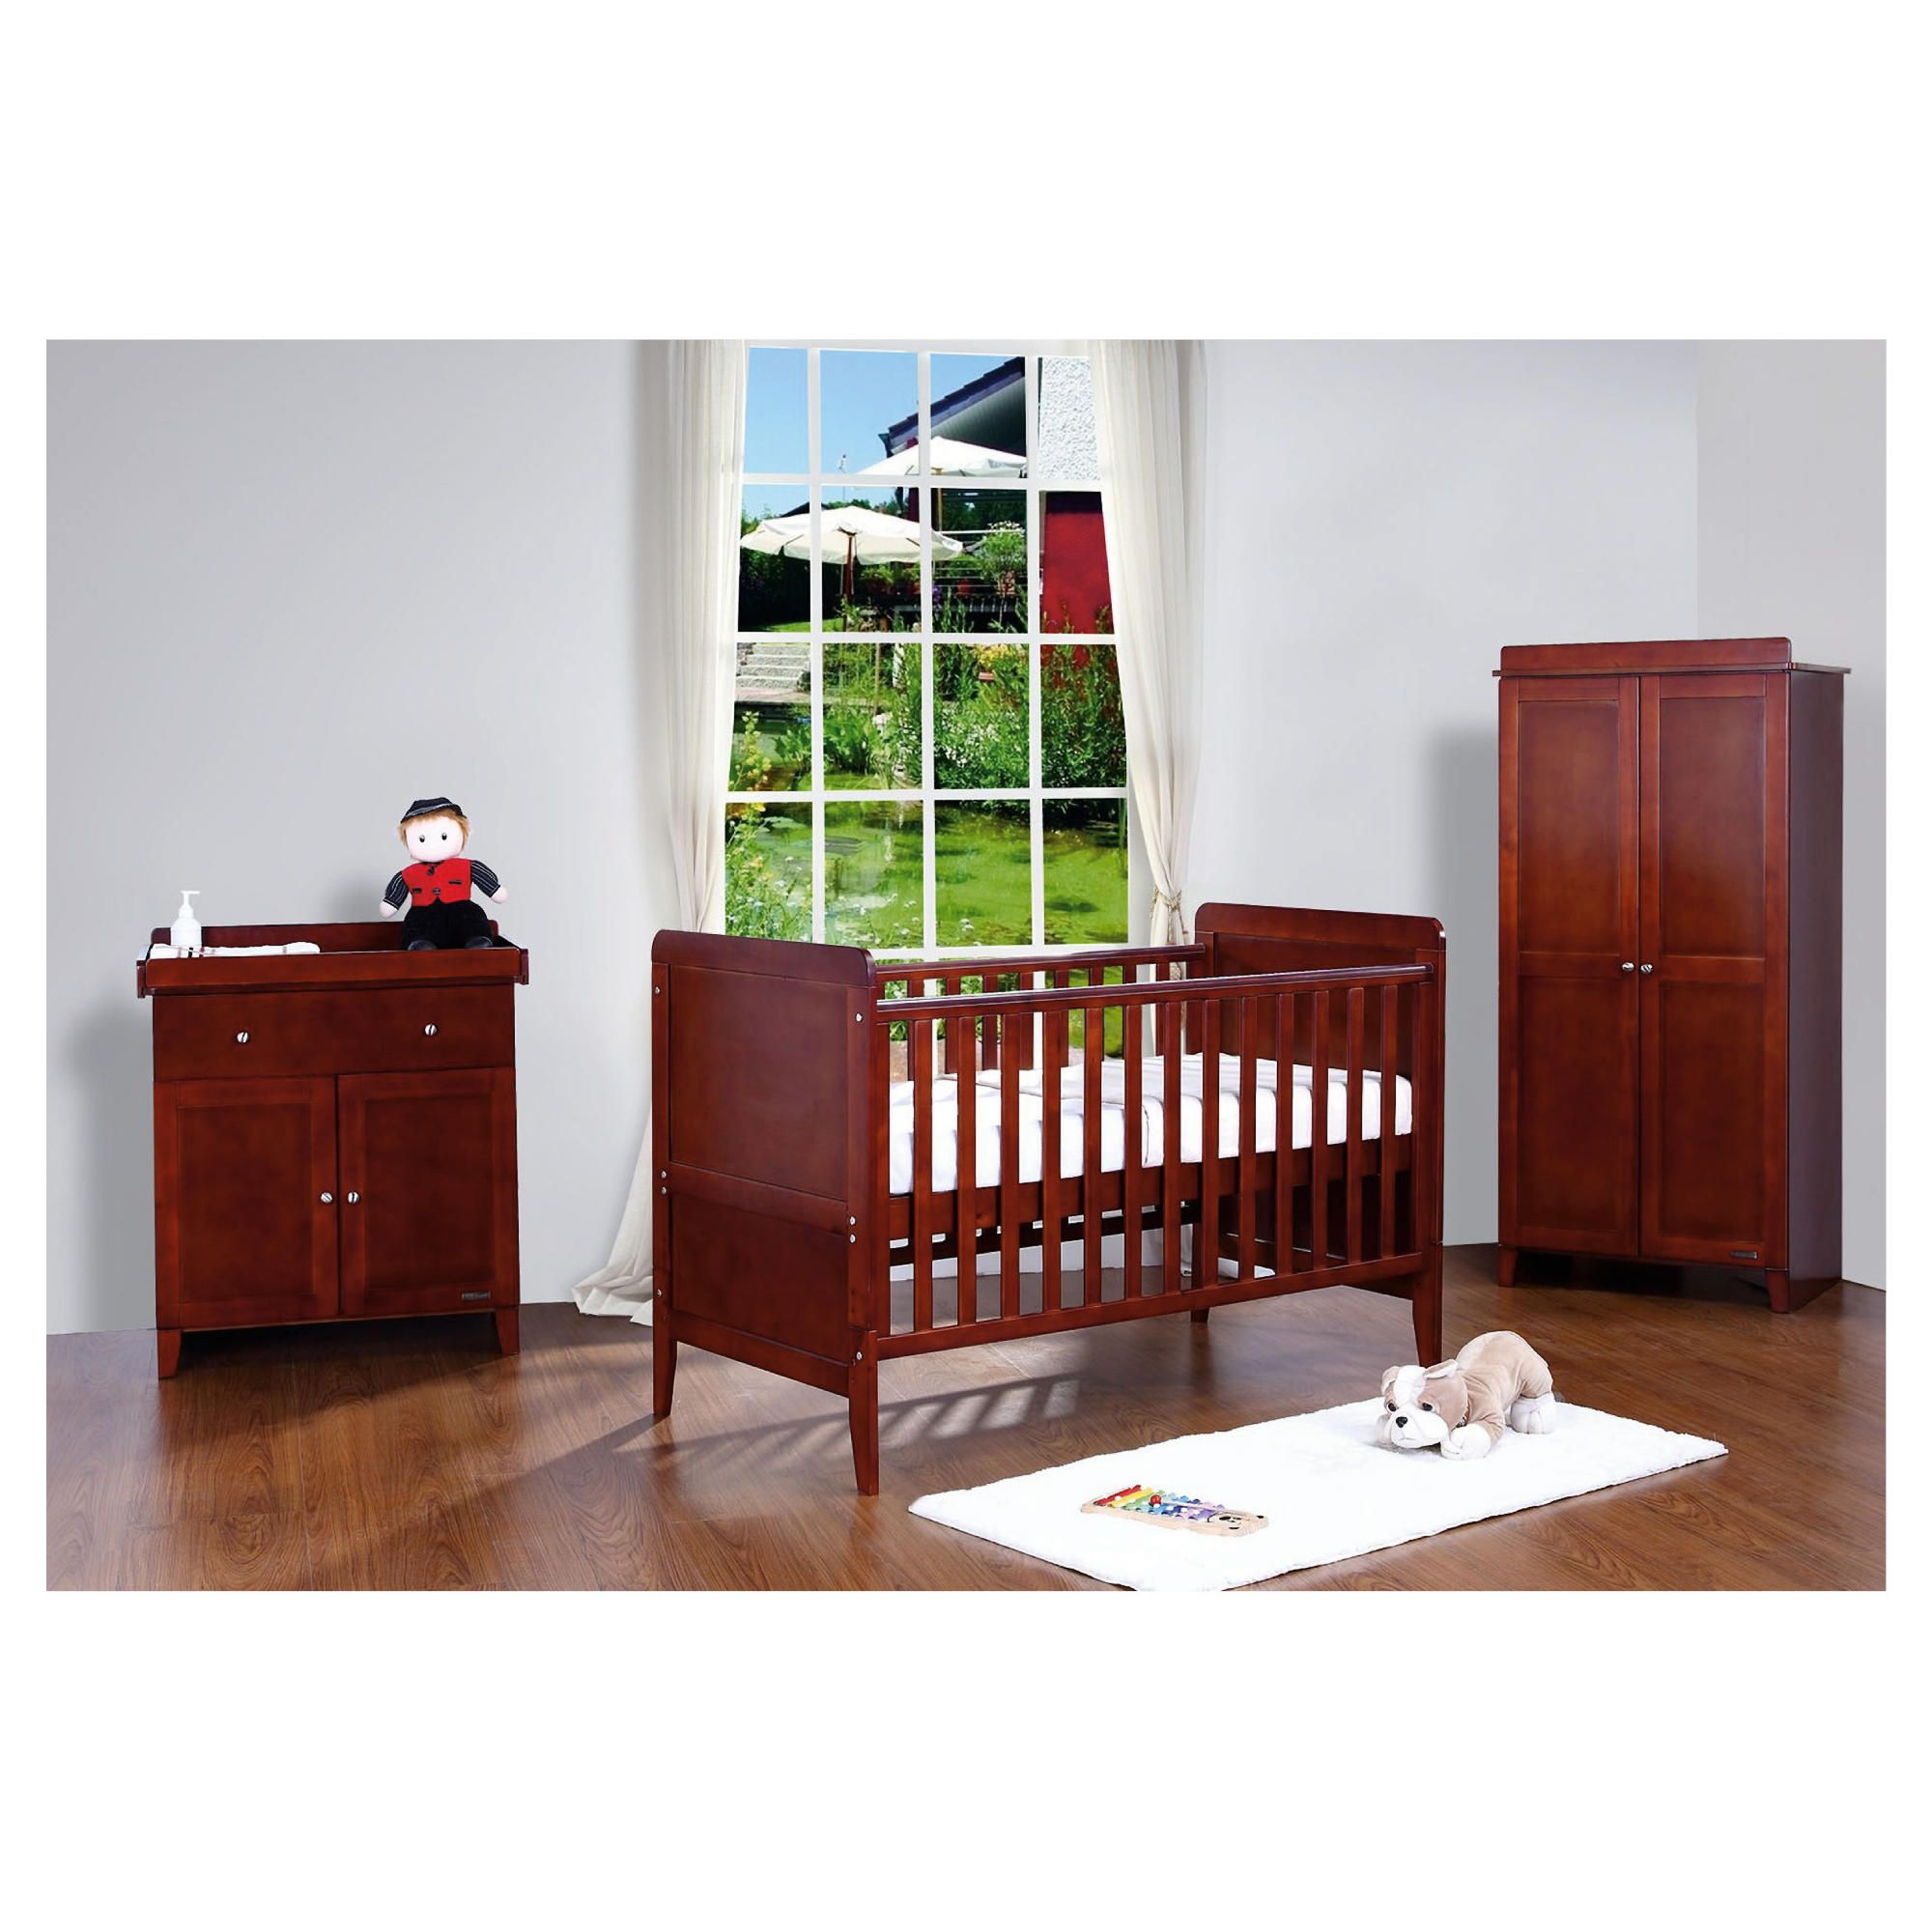 Tutti Bambini Rio 3 Piece Room Set, Coffee with FREE Home Assembly at Tesco Direct